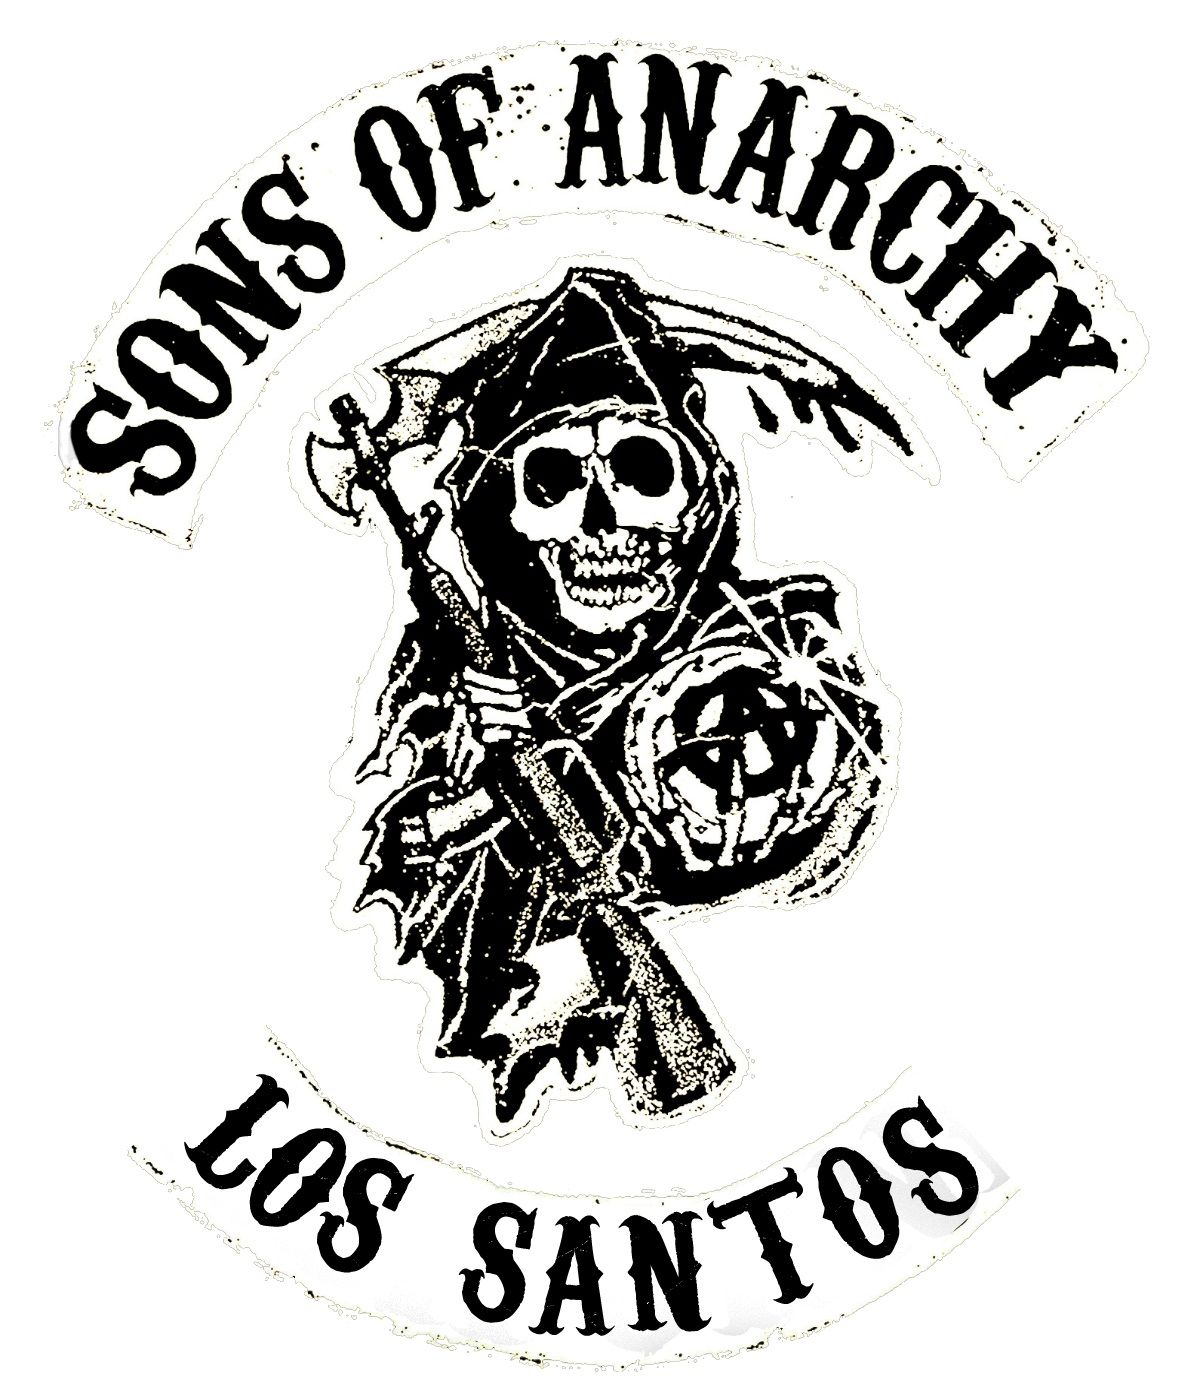 Soa Reaper Logos And States